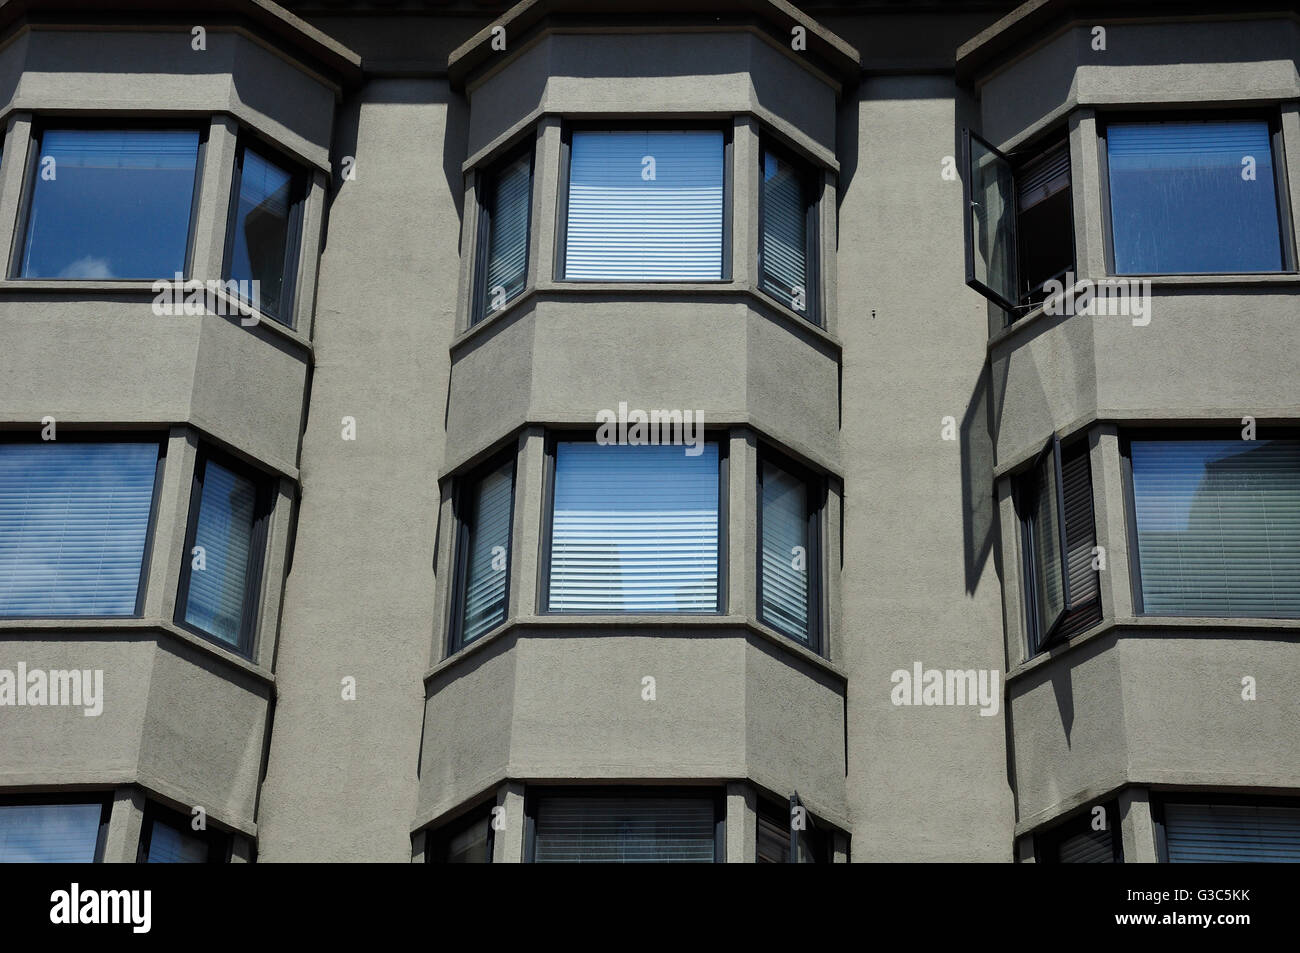 Bay windows on the exterior of a generic apartment building in San Francisco California. - Stock Image